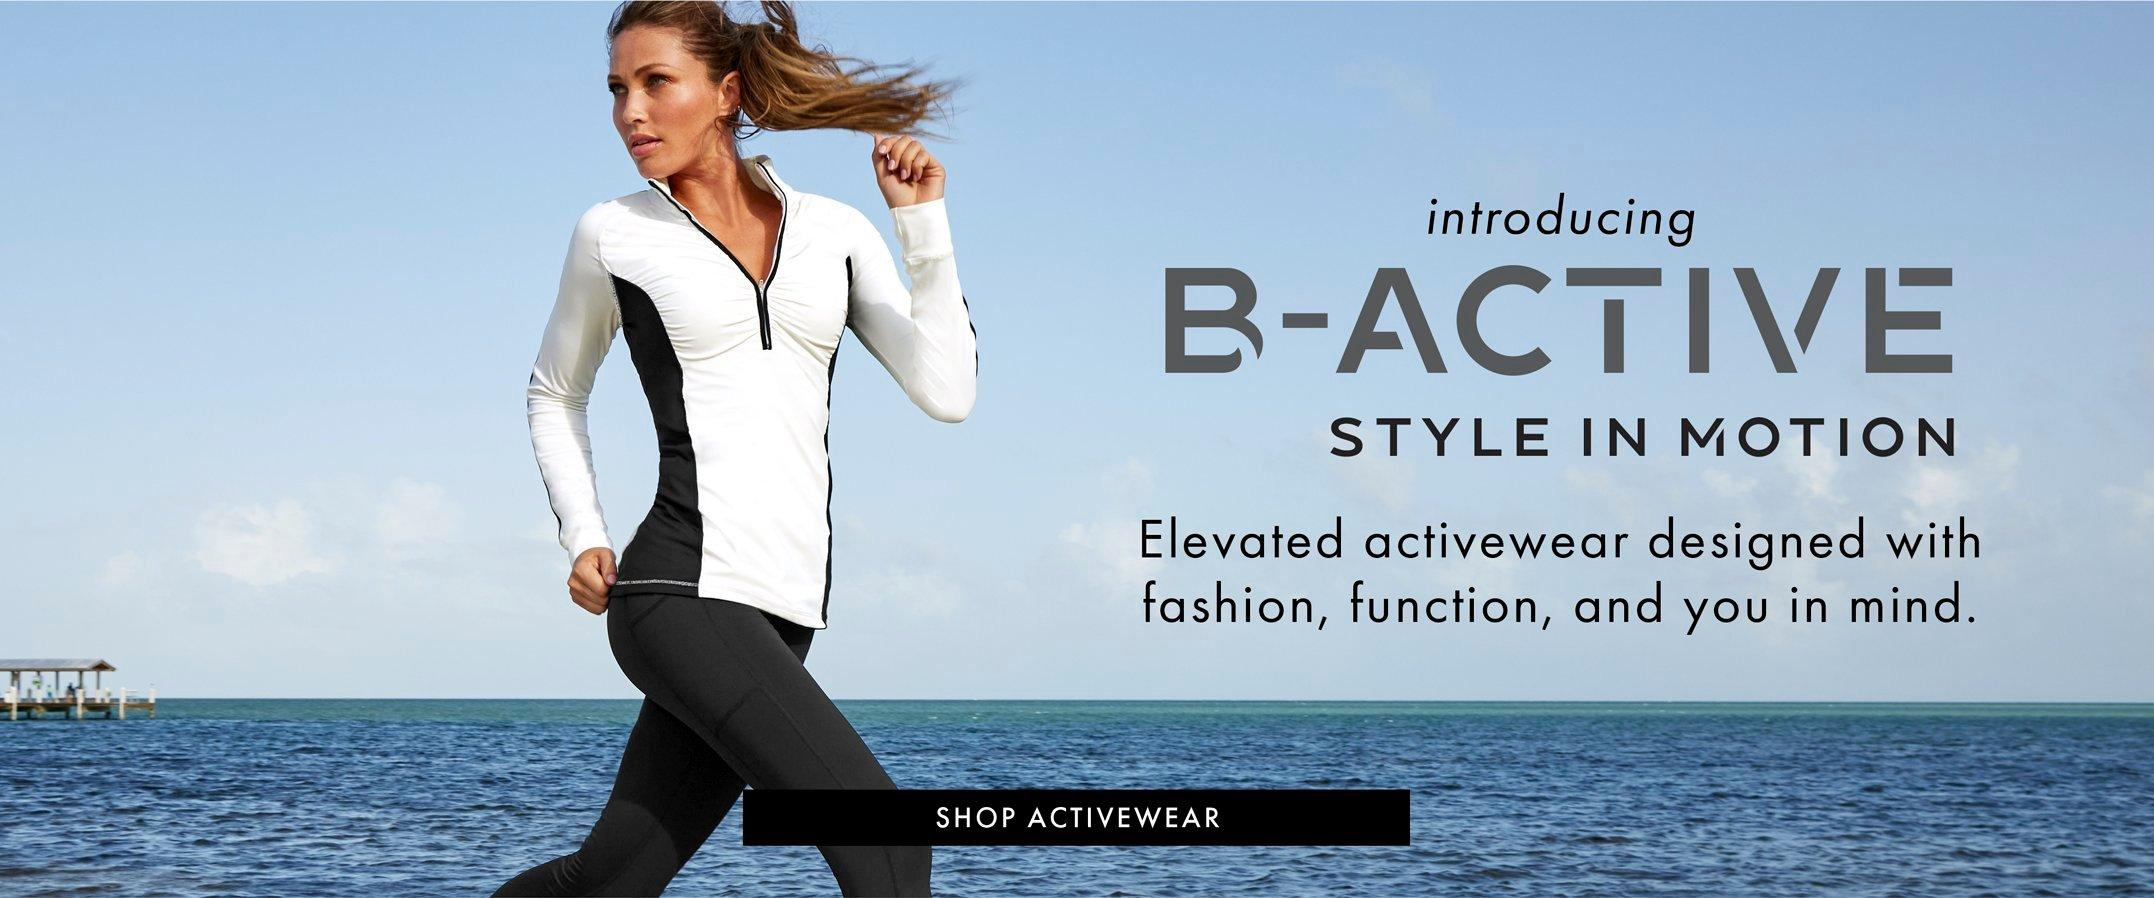 black text: introducing b-active. shop activewear. model wearing a blue and white color-block two-piece set and white sneakers.